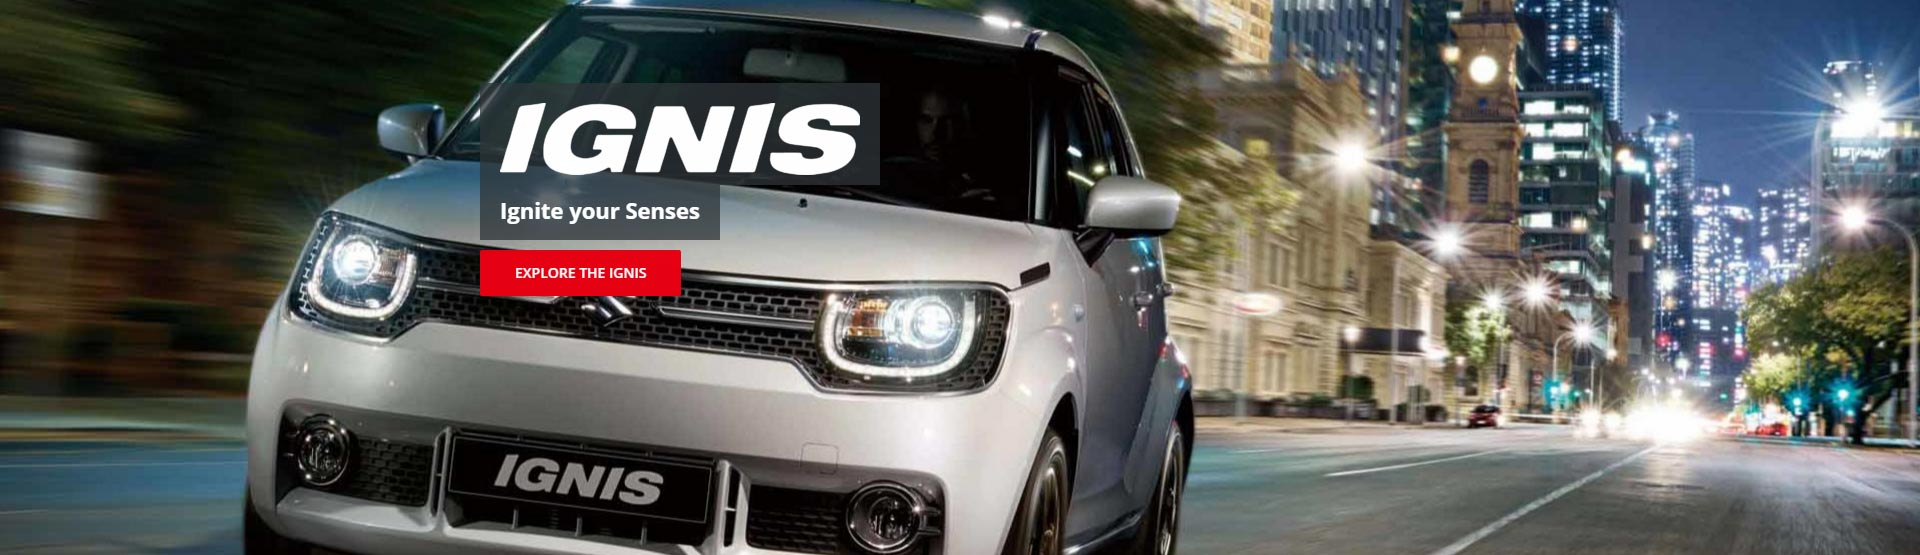 Ignite your senses with the new Suzuki Ignis at Redcliffe Suzuki Brisbane.